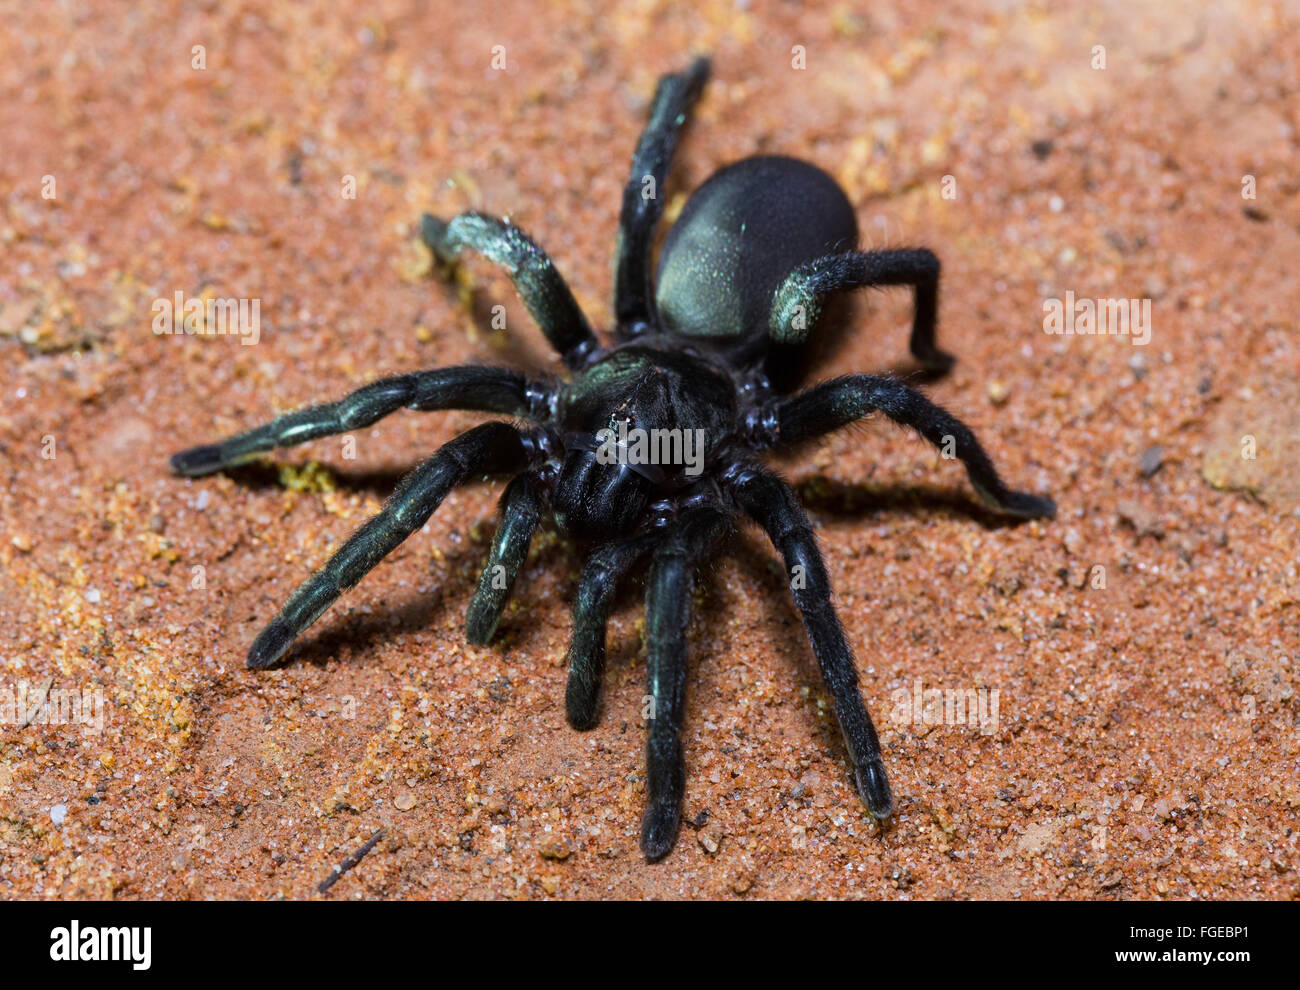 Brush-footed Trapdoor Spider (Barychelidae sp.), Cunnamulla, Queensland, Australia - Stock Image